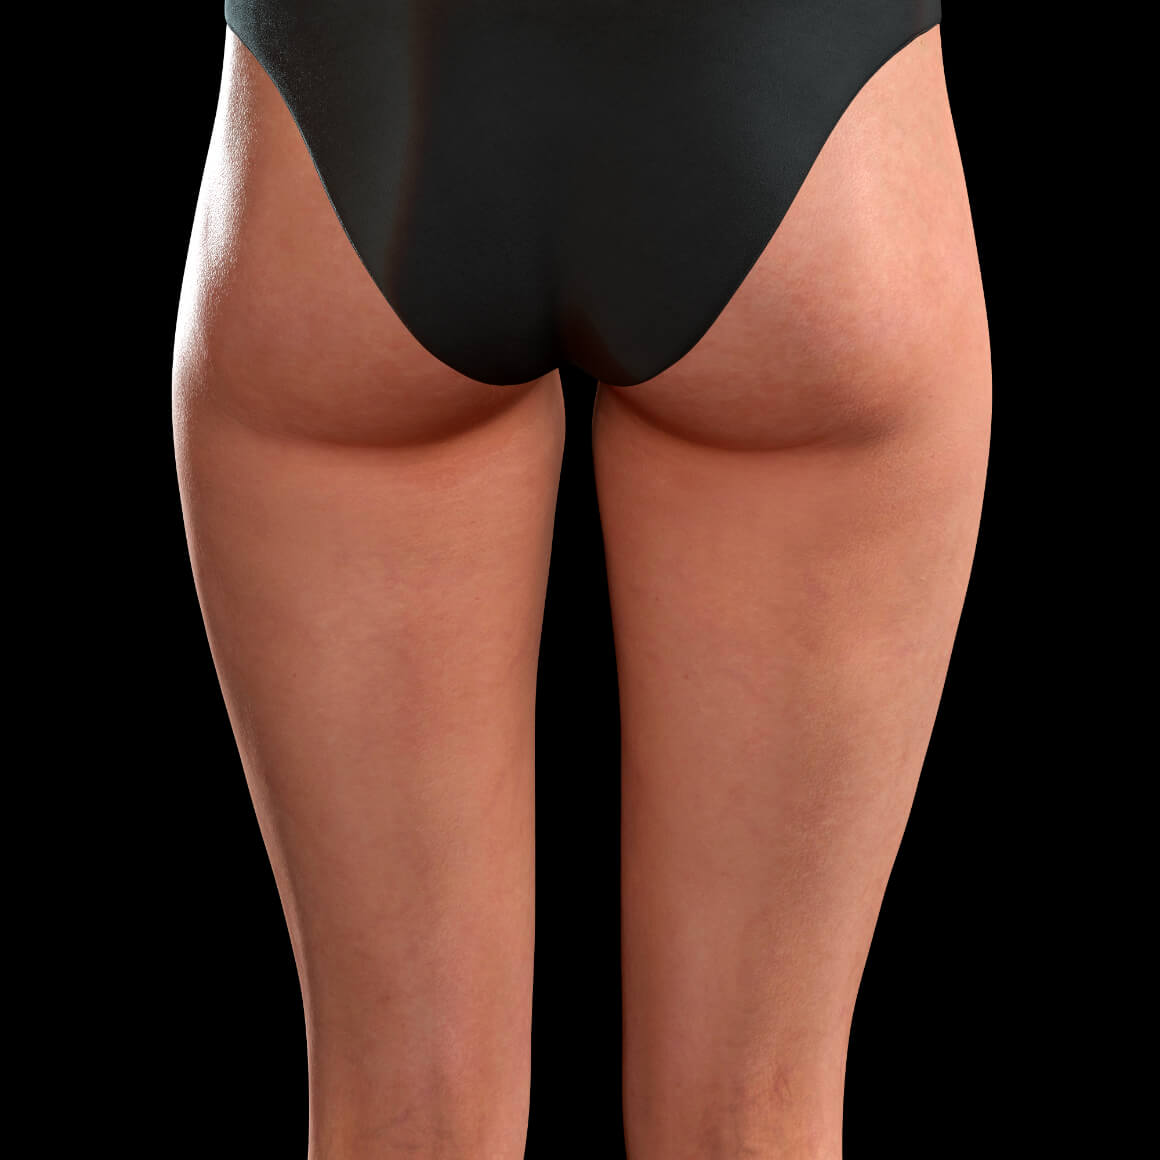 Back thighs of a female patient from Clinique Chloé after TightSculpting laser treatments for cellulite treatment